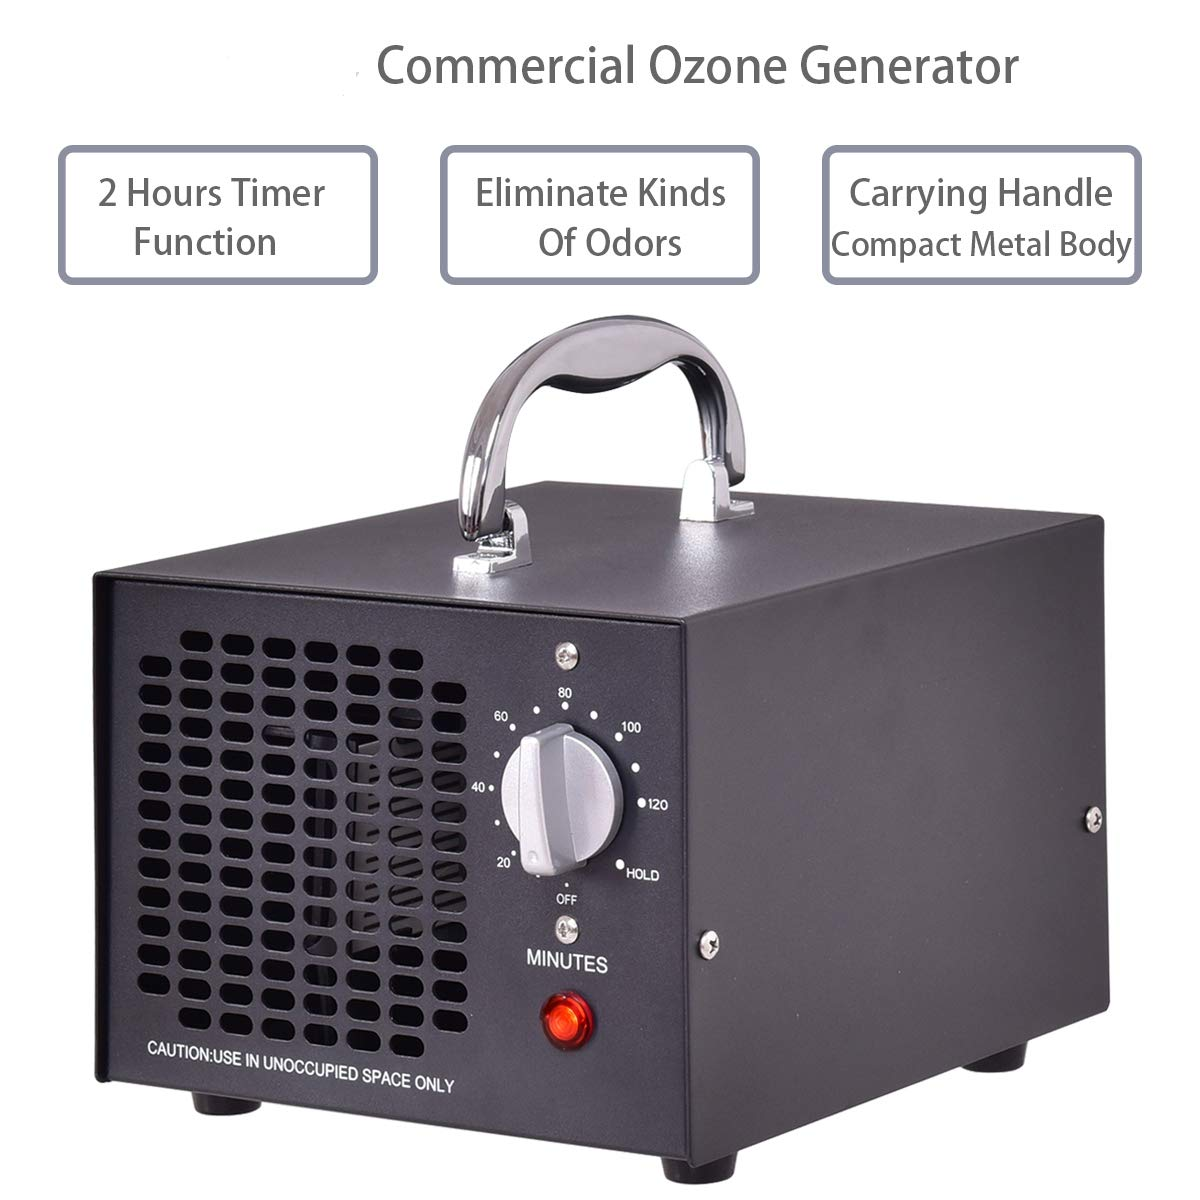 BestComfort Commercial Ozone Generator 5,000mg Industrial Air Purifier